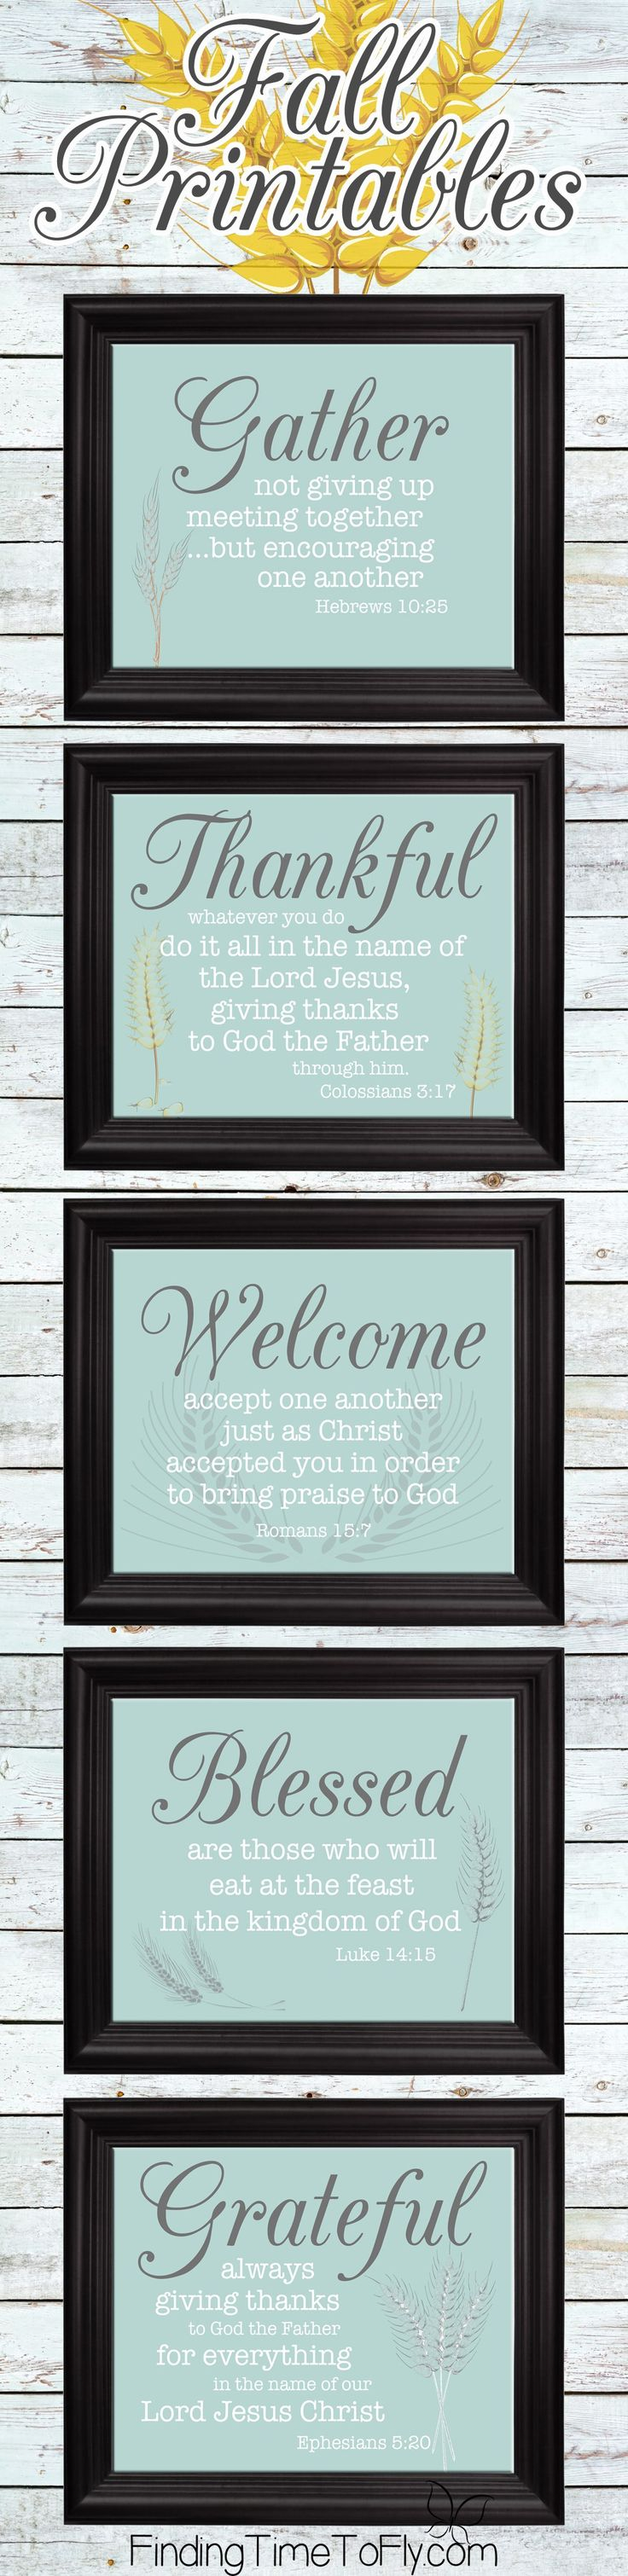 Gorgeous fall printables in blue (hard to find!) with Bible verses, too!